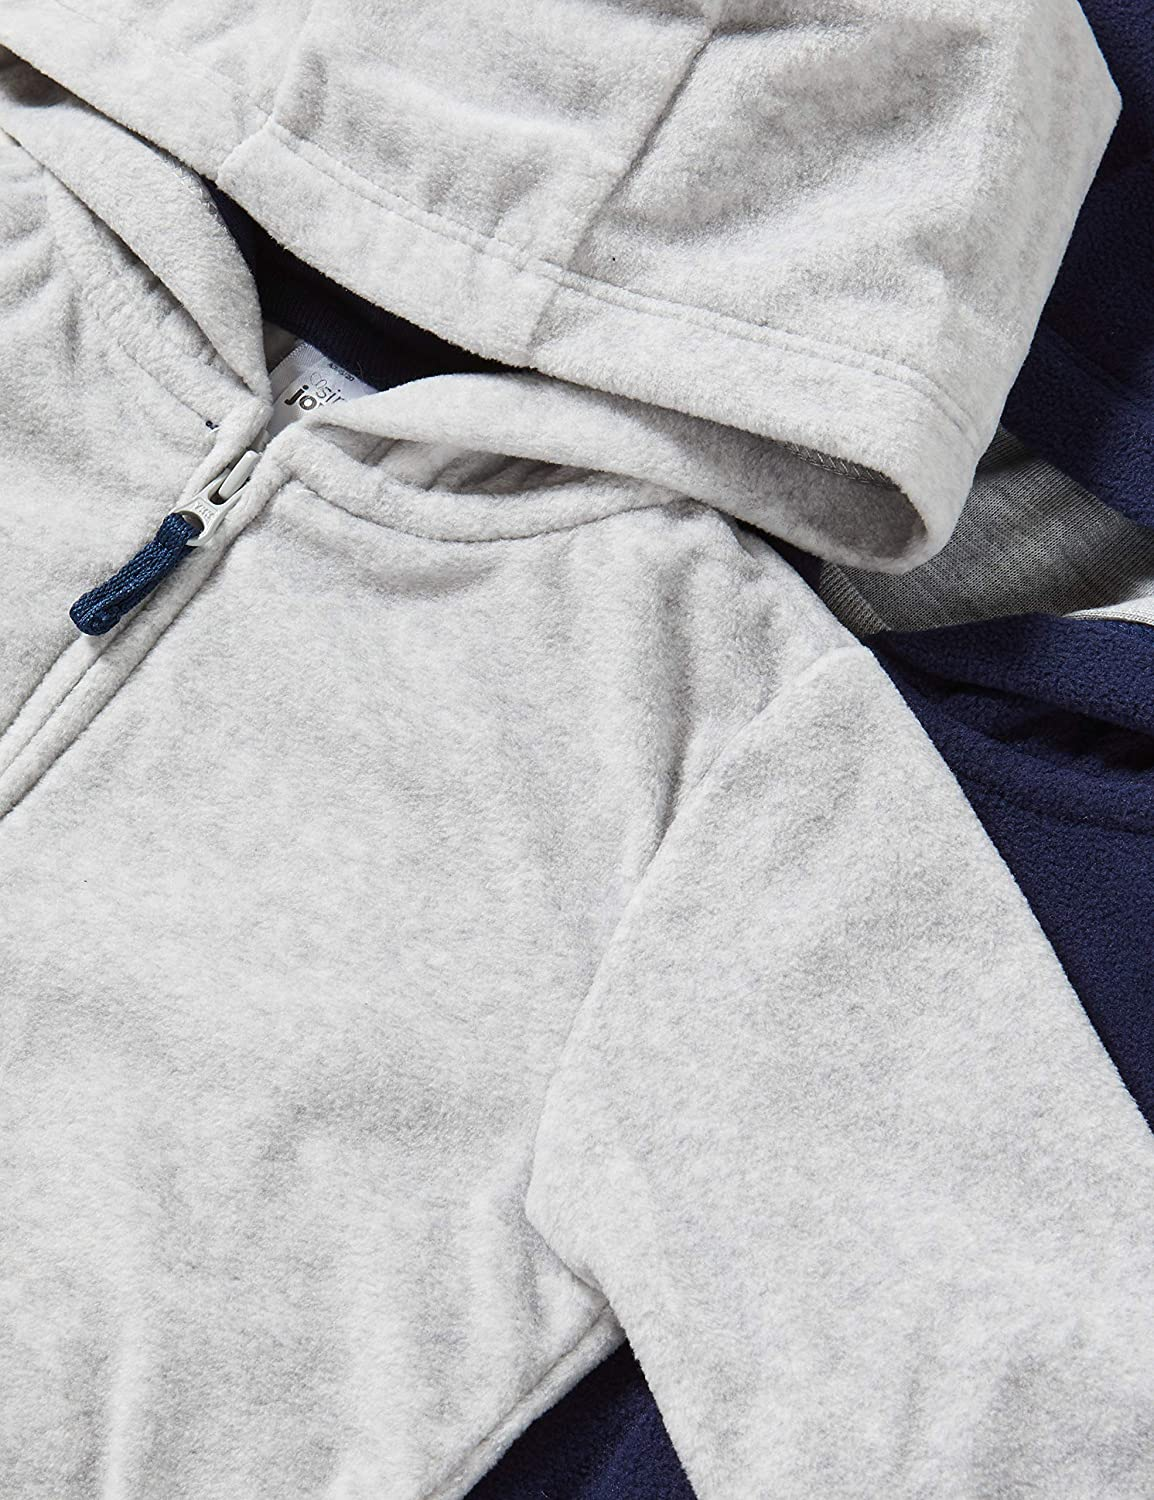 Simple Joys by Carter's Baby Boys' 2-Pack Fleece Full Zip Hoodies : Clothing, Shoes & Jewelry